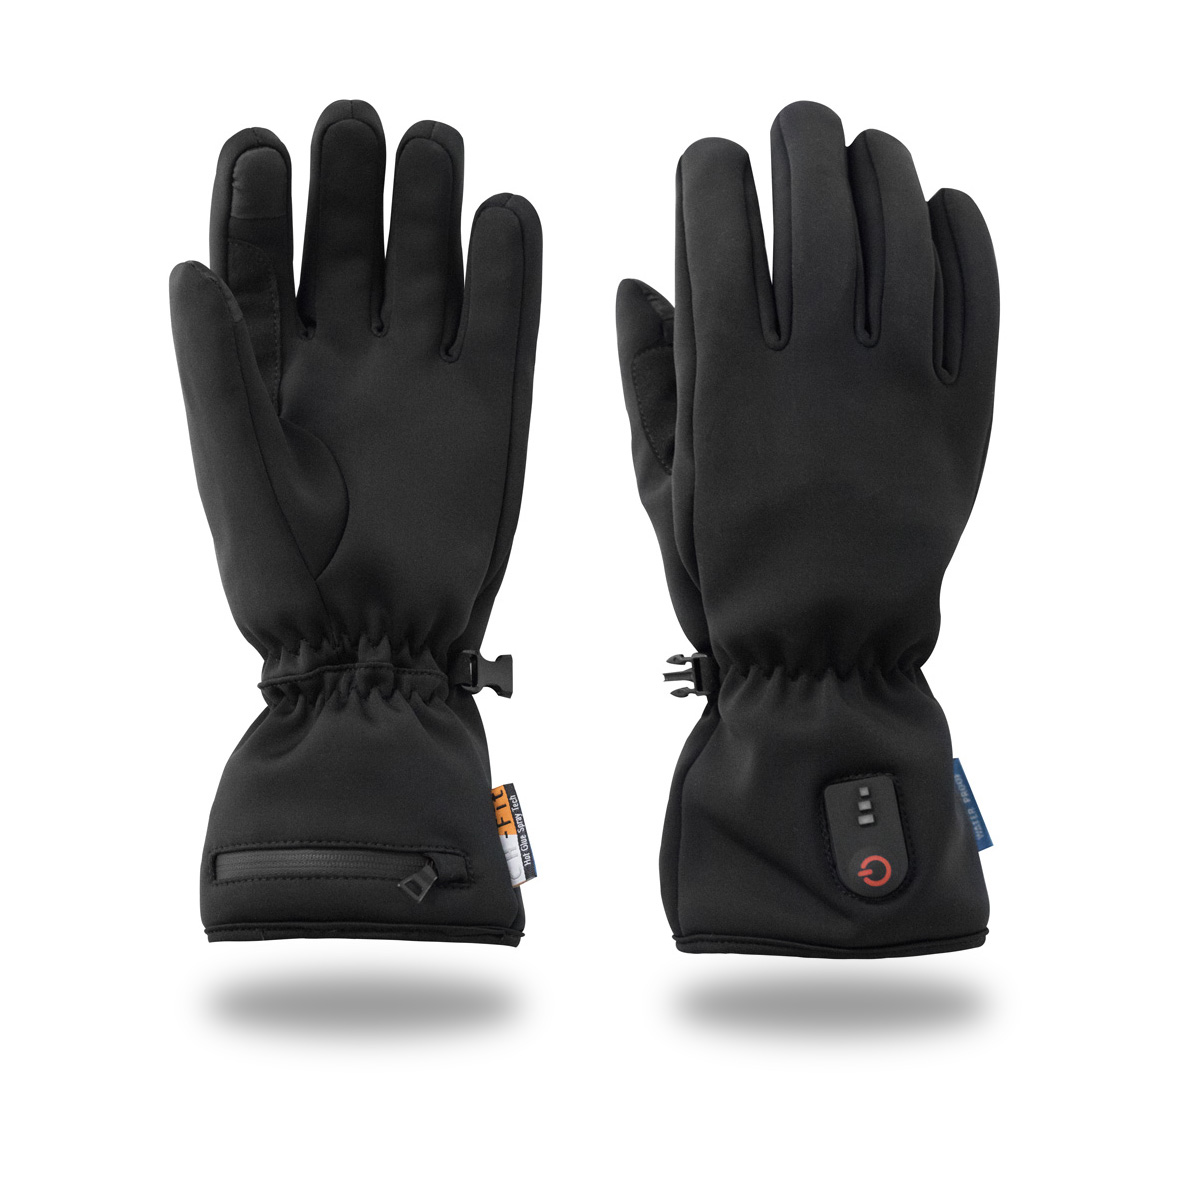 suitable electric hand warmer gloves gloves for indoor use-1